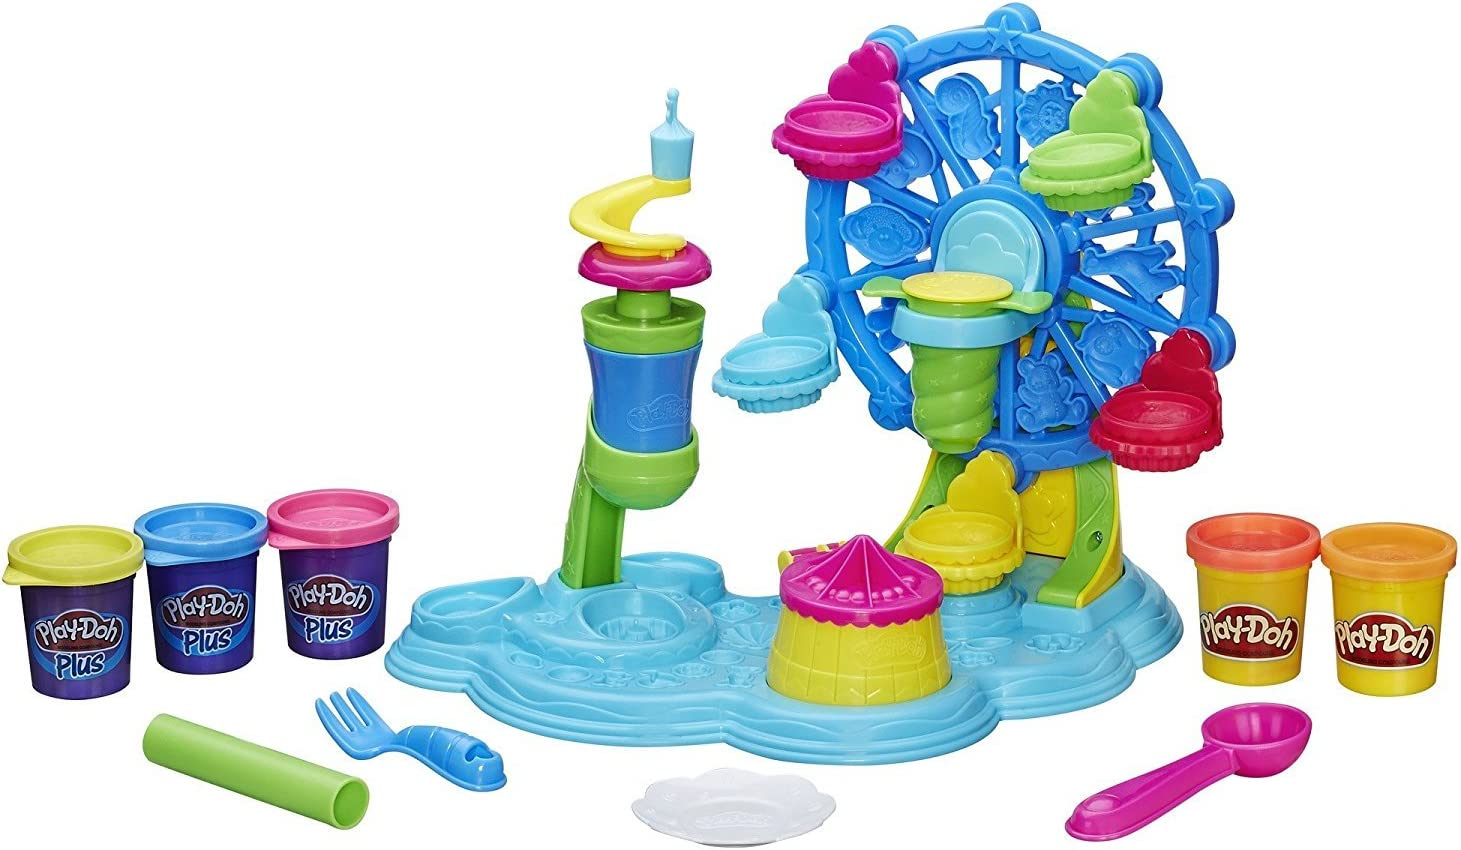 Top 13 Best Play Dough Sets For Boys (2020 Reviews & Buying Guide) 11